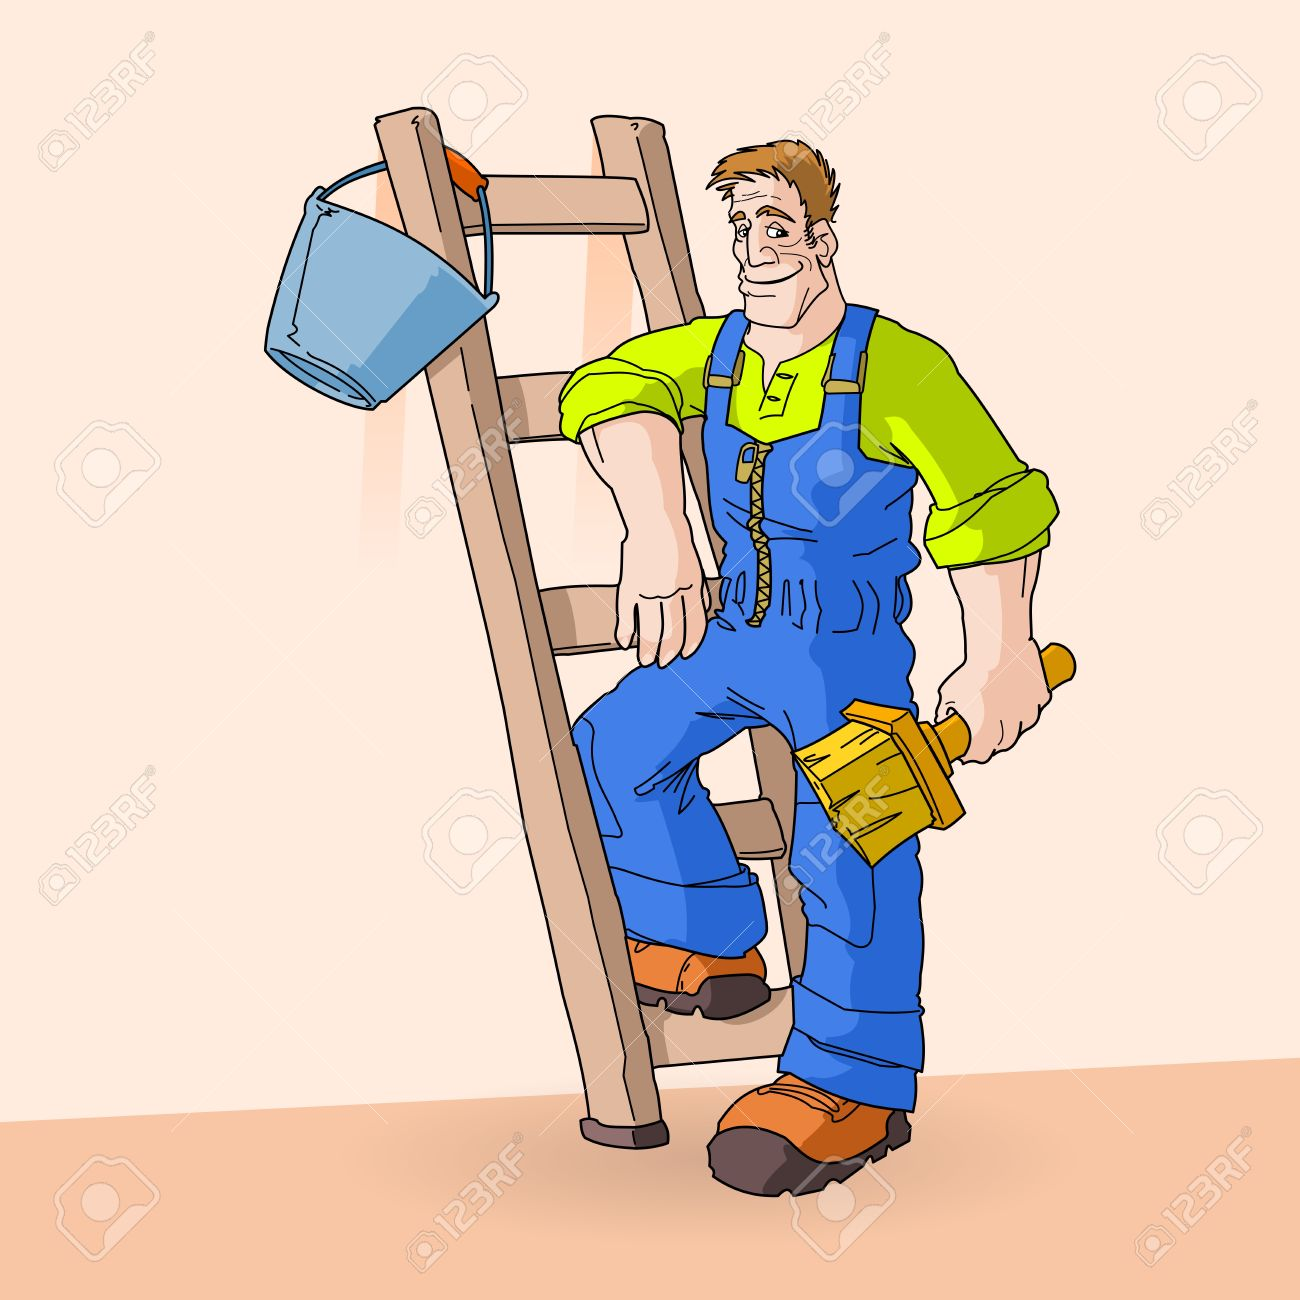 Clipart Painter And Decorator.